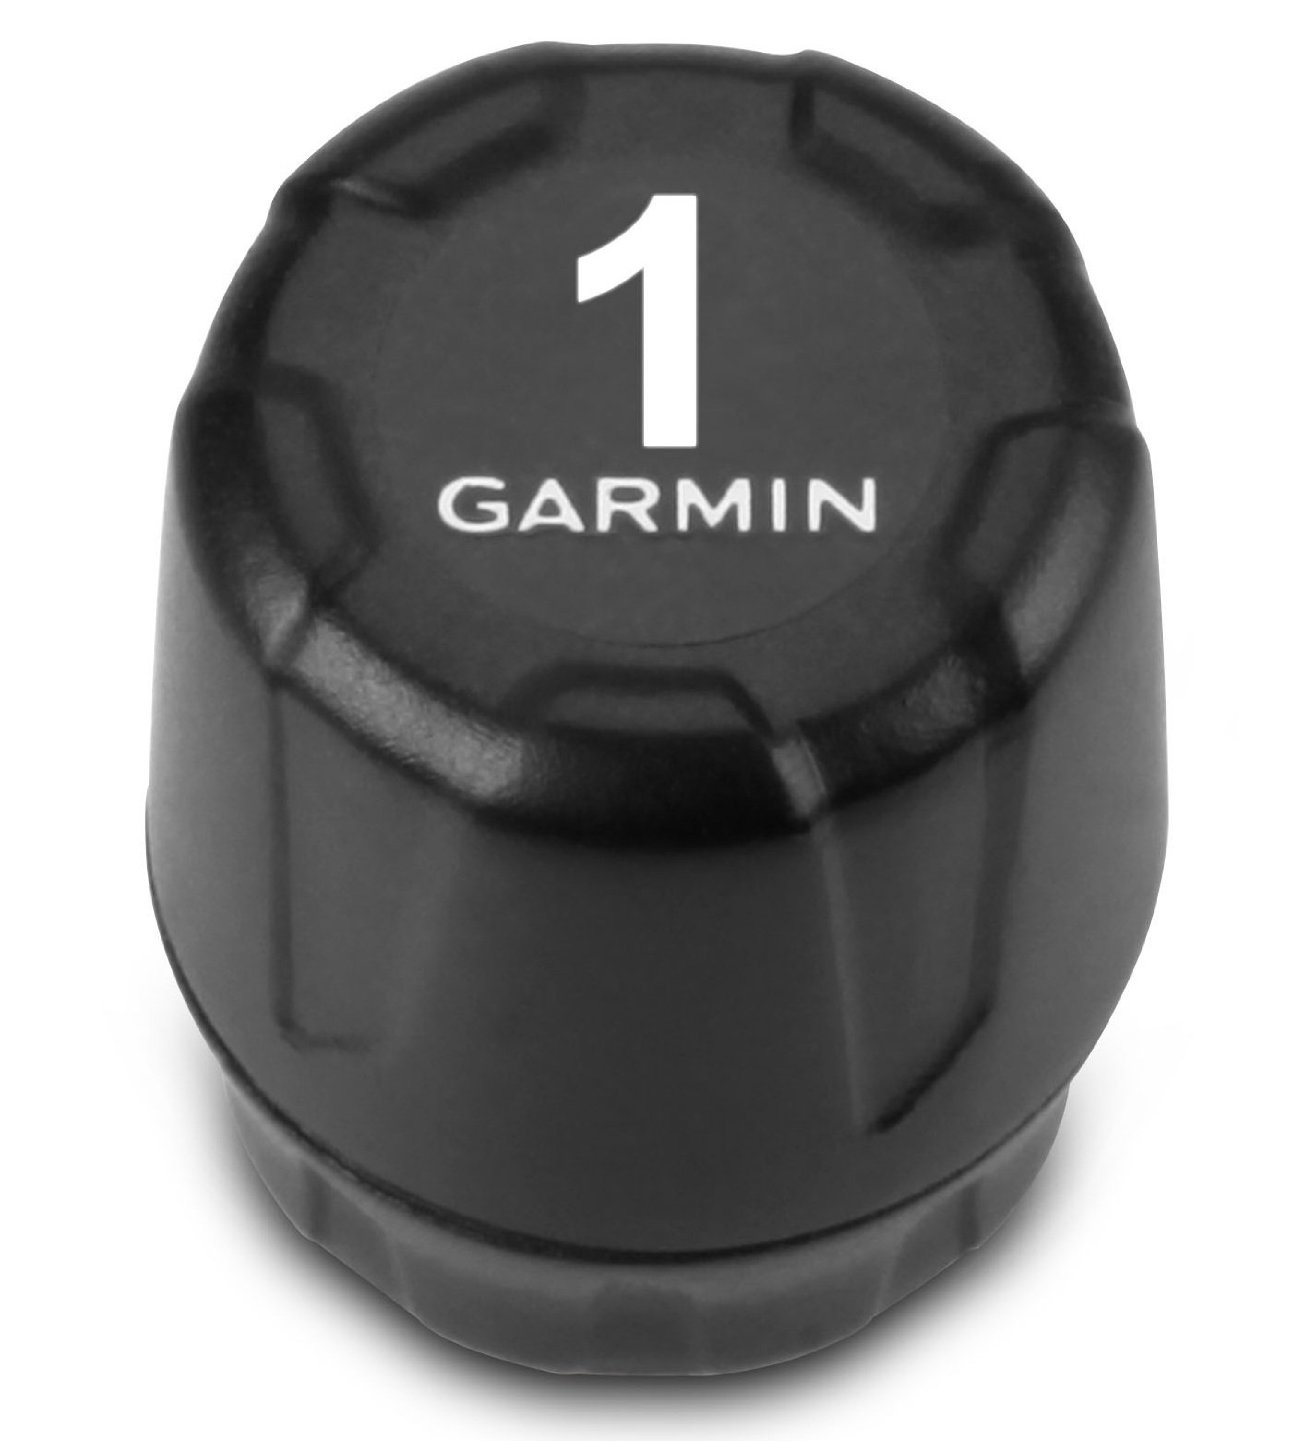 garmin reifen drucksensor tpms x 2 2er pack f r zumo 390lm 395lm 590lm 595lm ebay. Black Bedroom Furniture Sets. Home Design Ideas